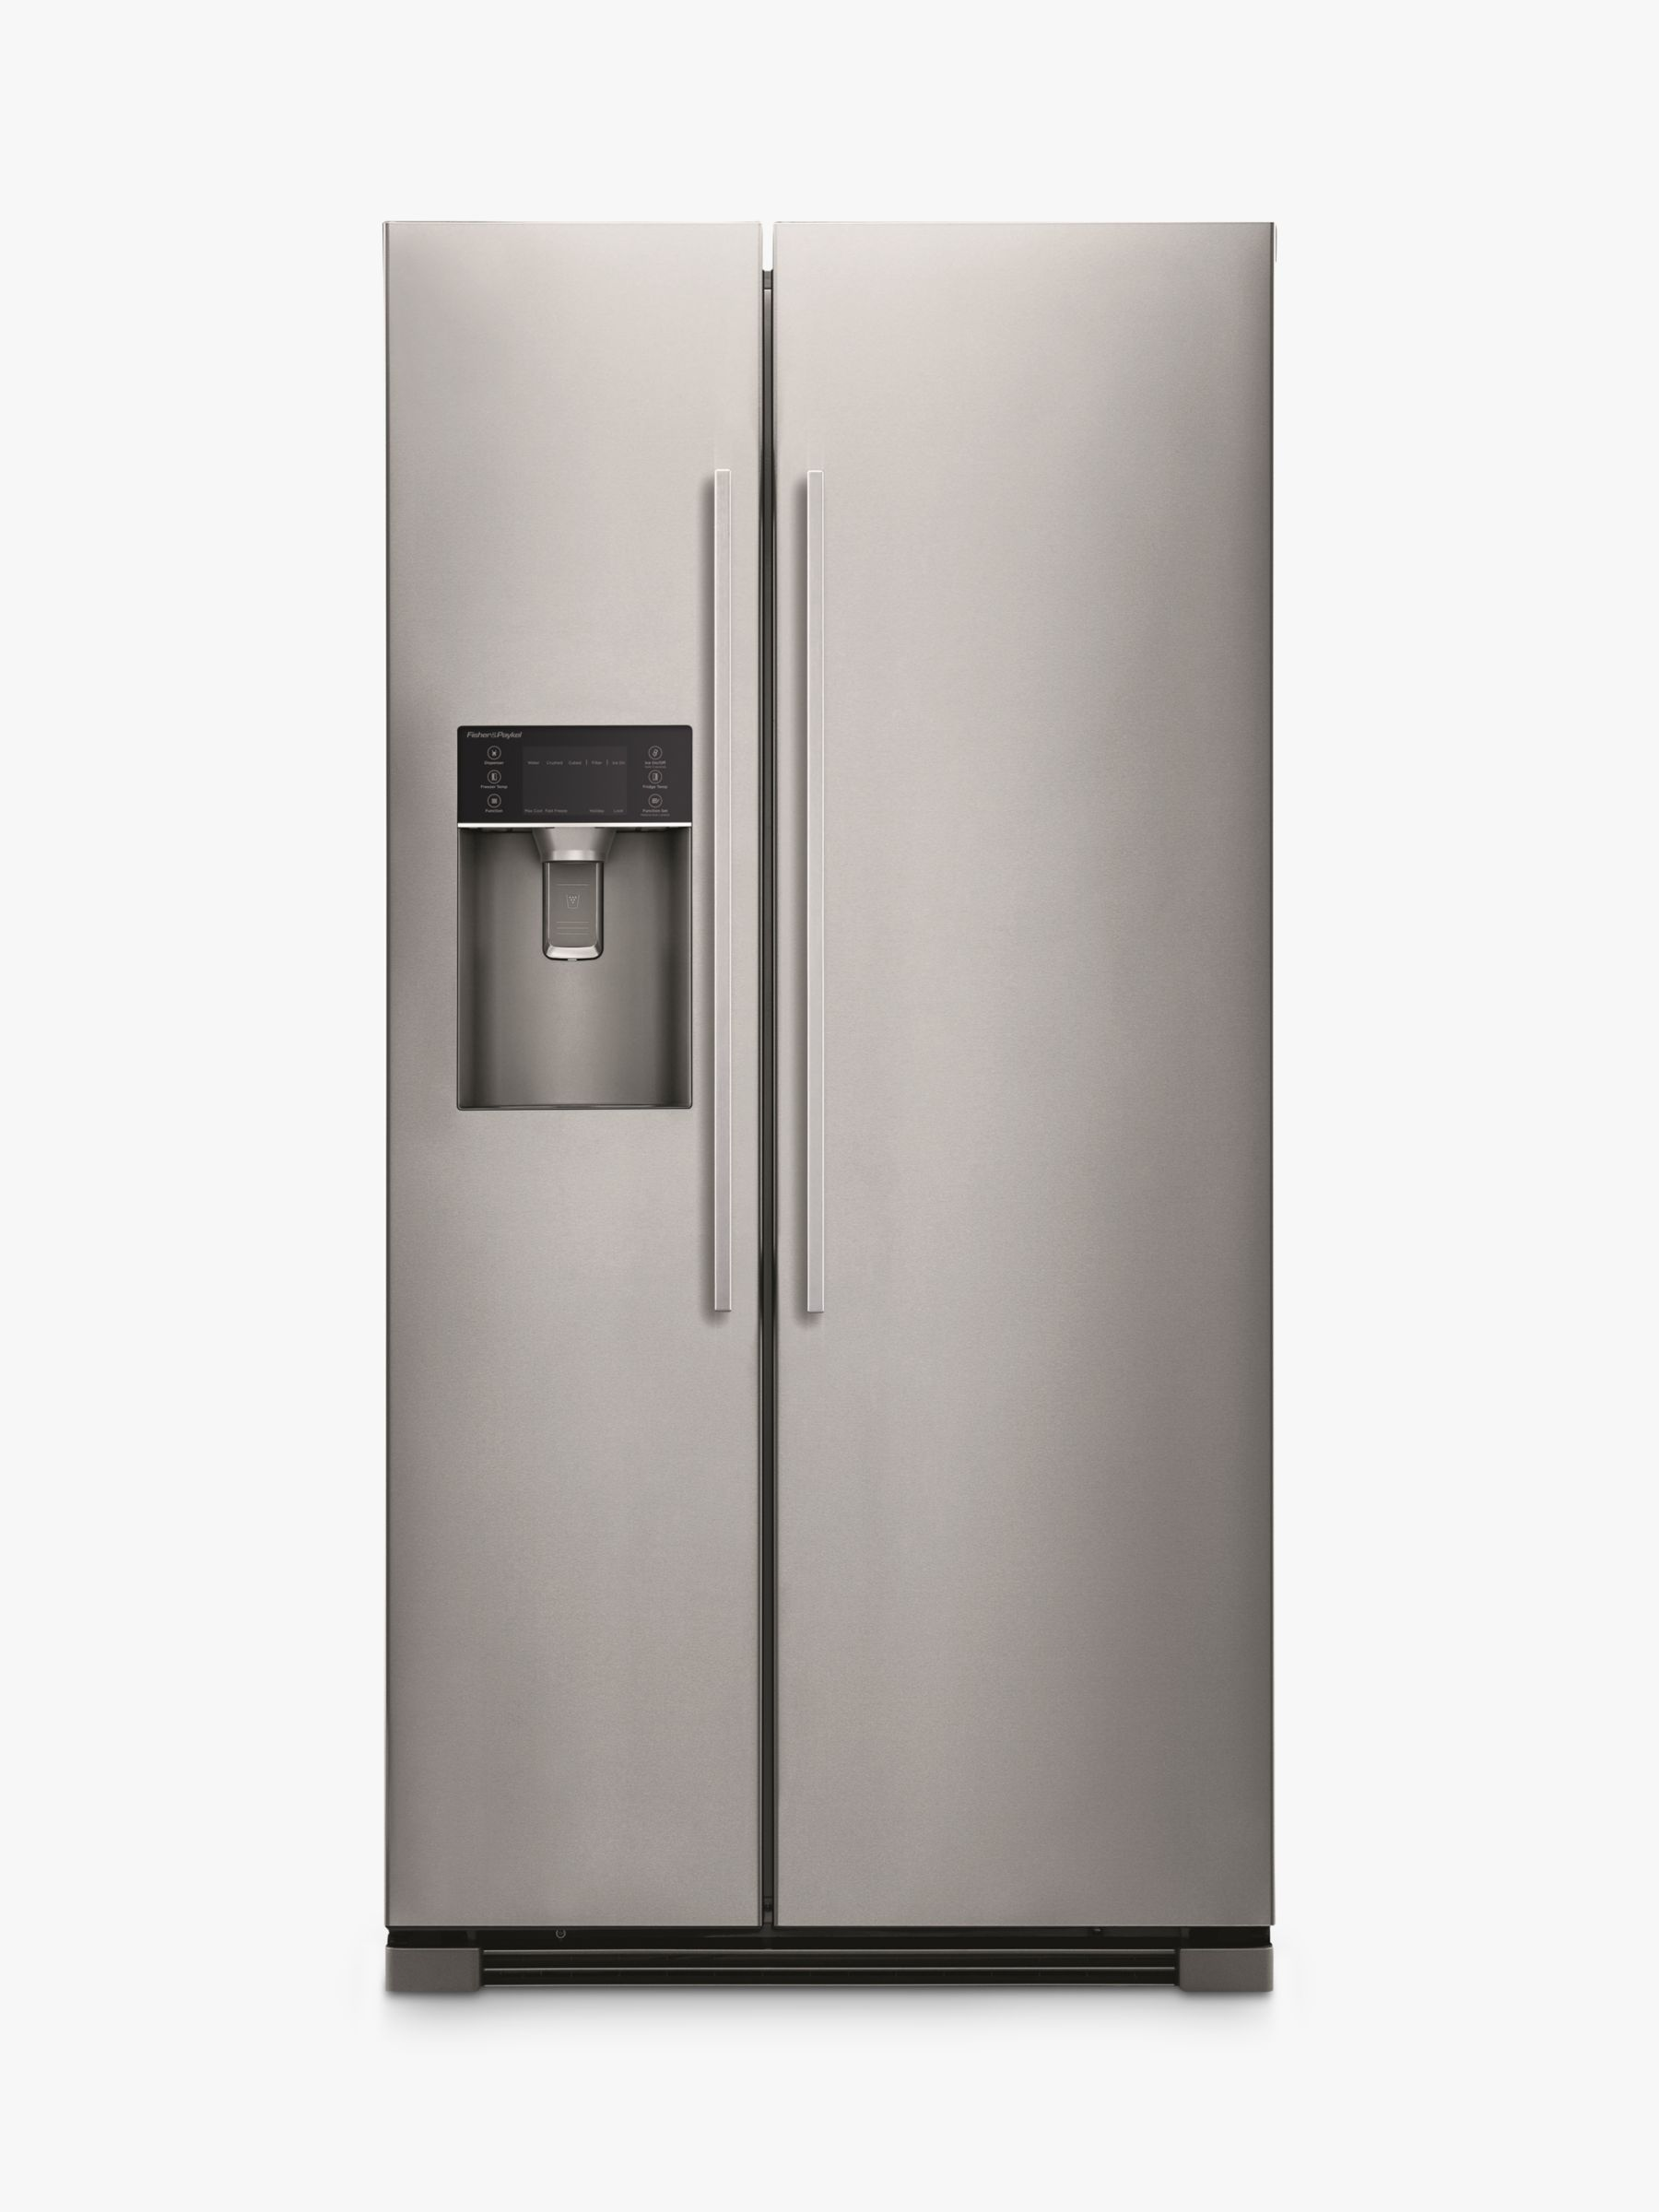 Fisher & Paykel Fisher & Paykel RX611DUX American Style Fridge Freezer, Stainless Steel